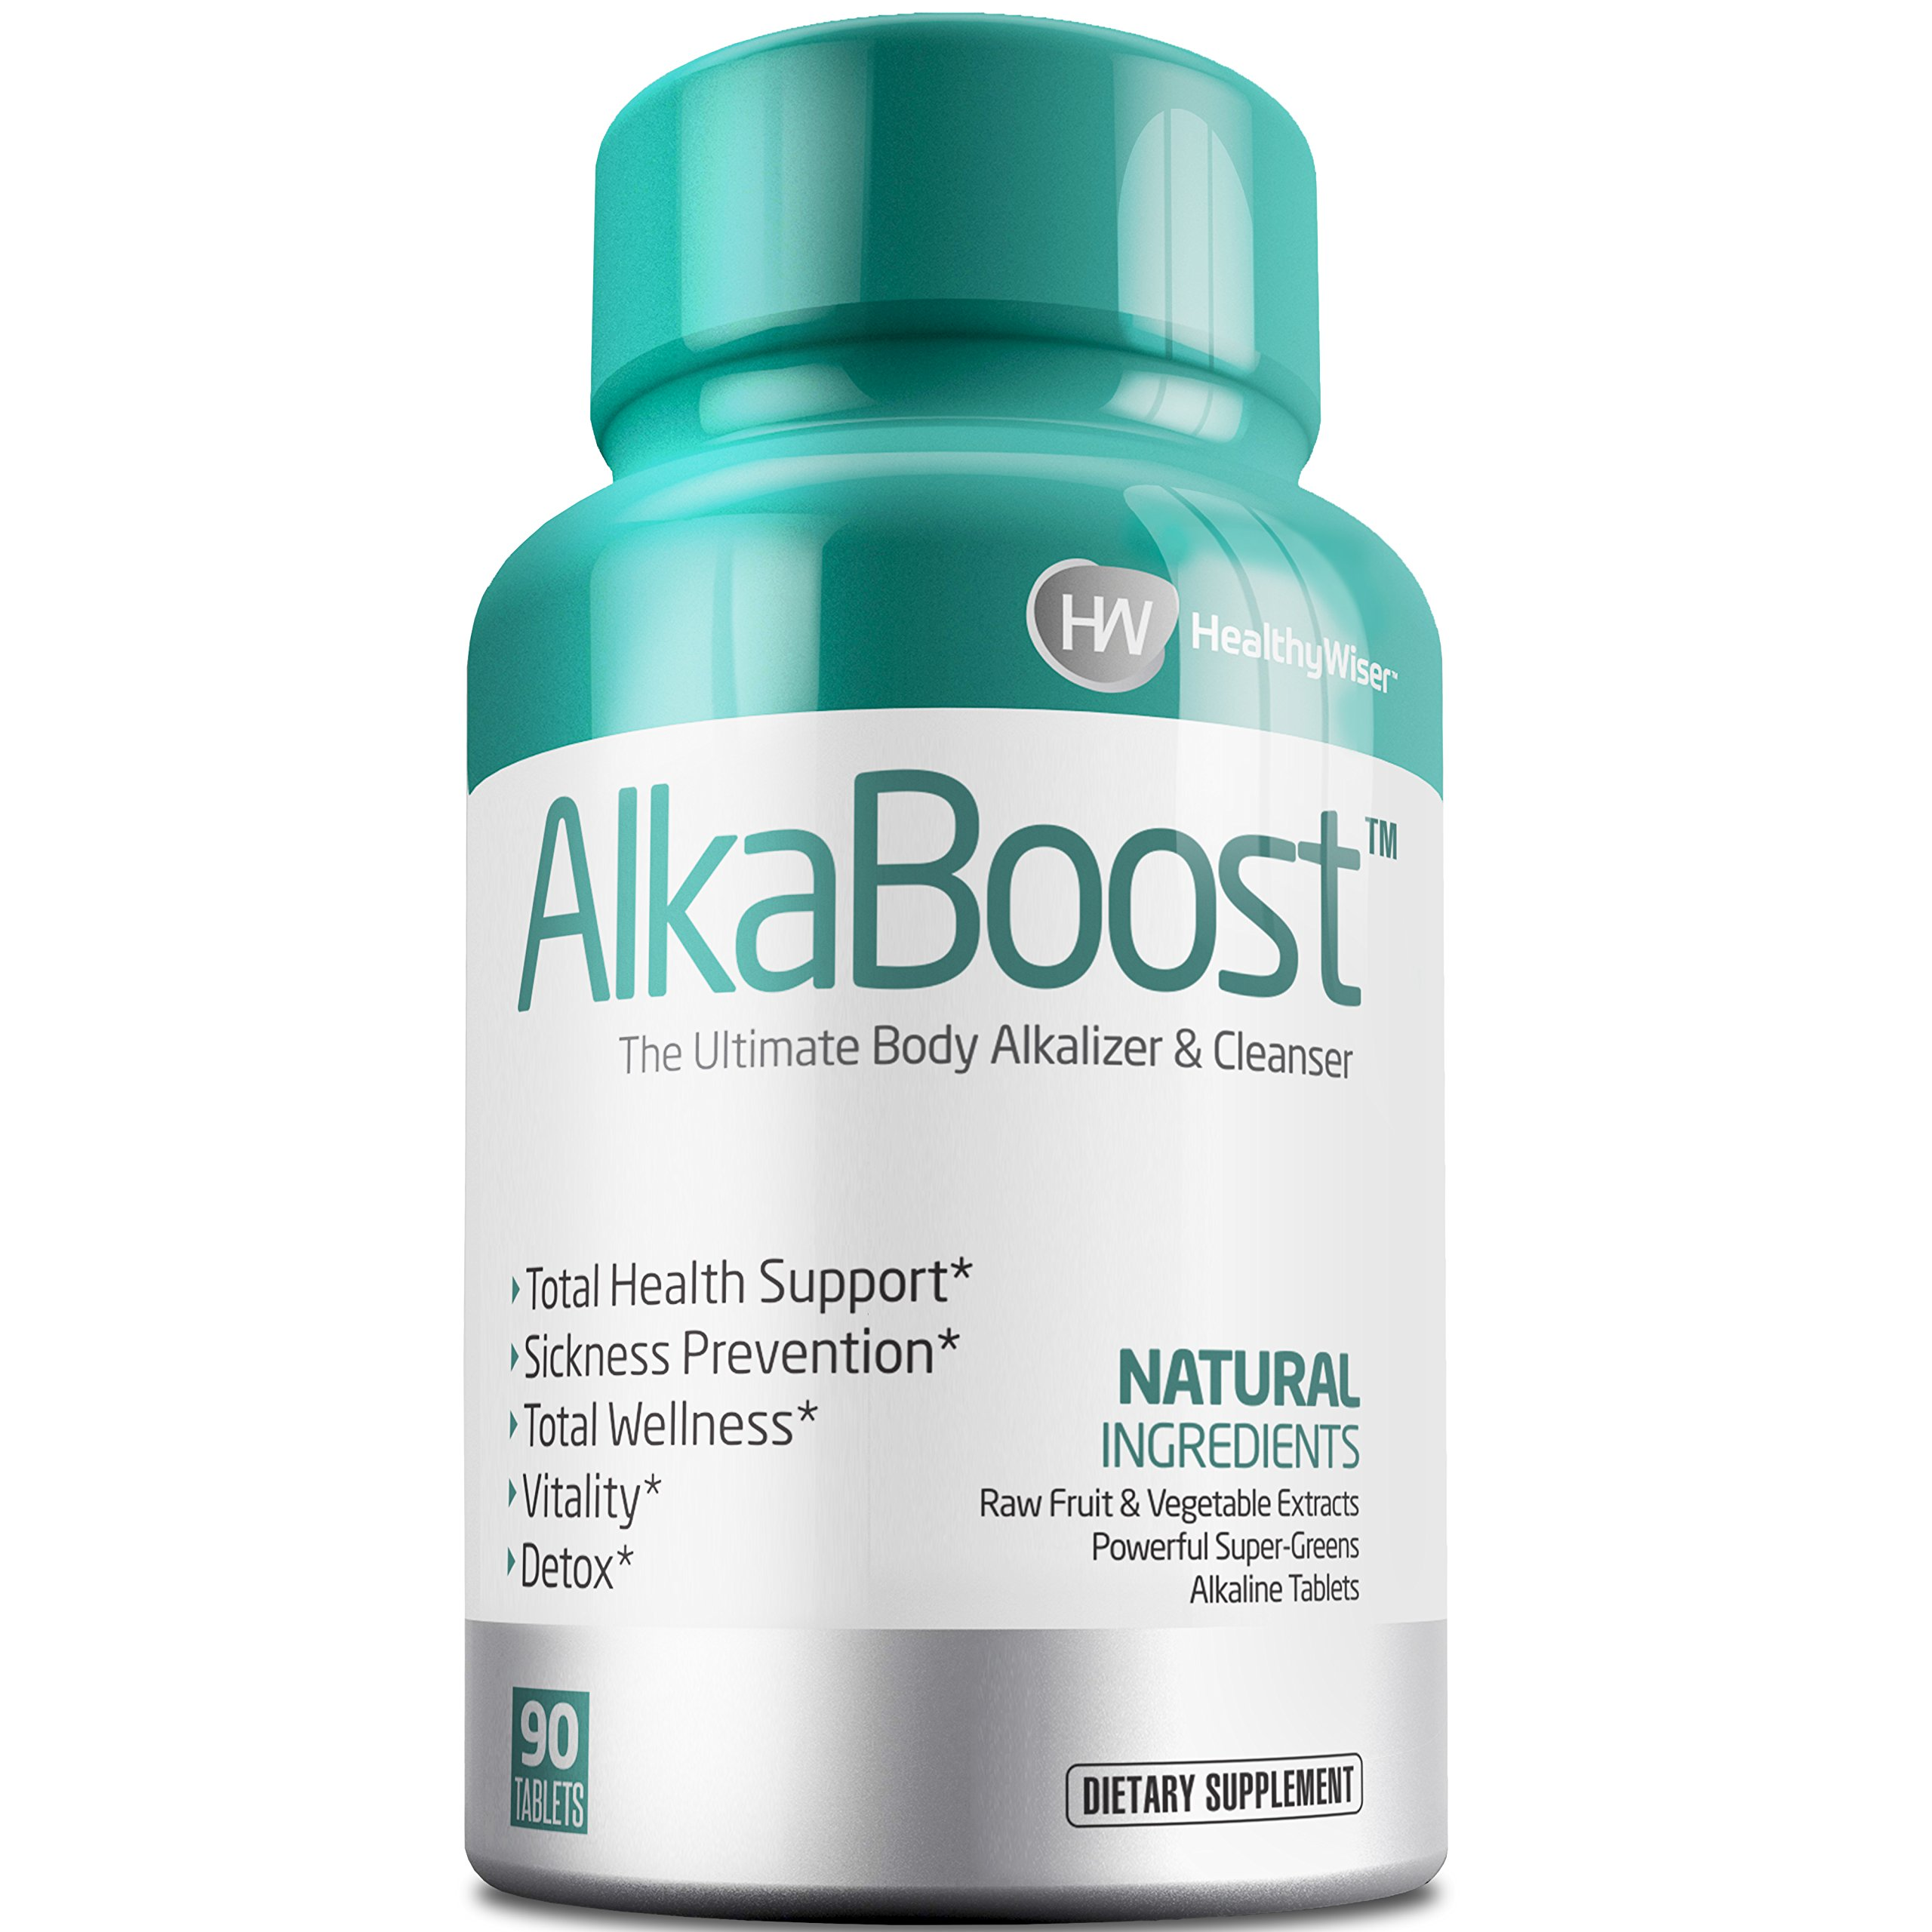 ALKA BOOST MultiVitamin For Healthy pH Balance, Alkaline Booster & Immune System Support. Natural Detox & Sickness Prevention - Promotes Energy Clarity and Focus - Green and Wholefood Blend, 90ct